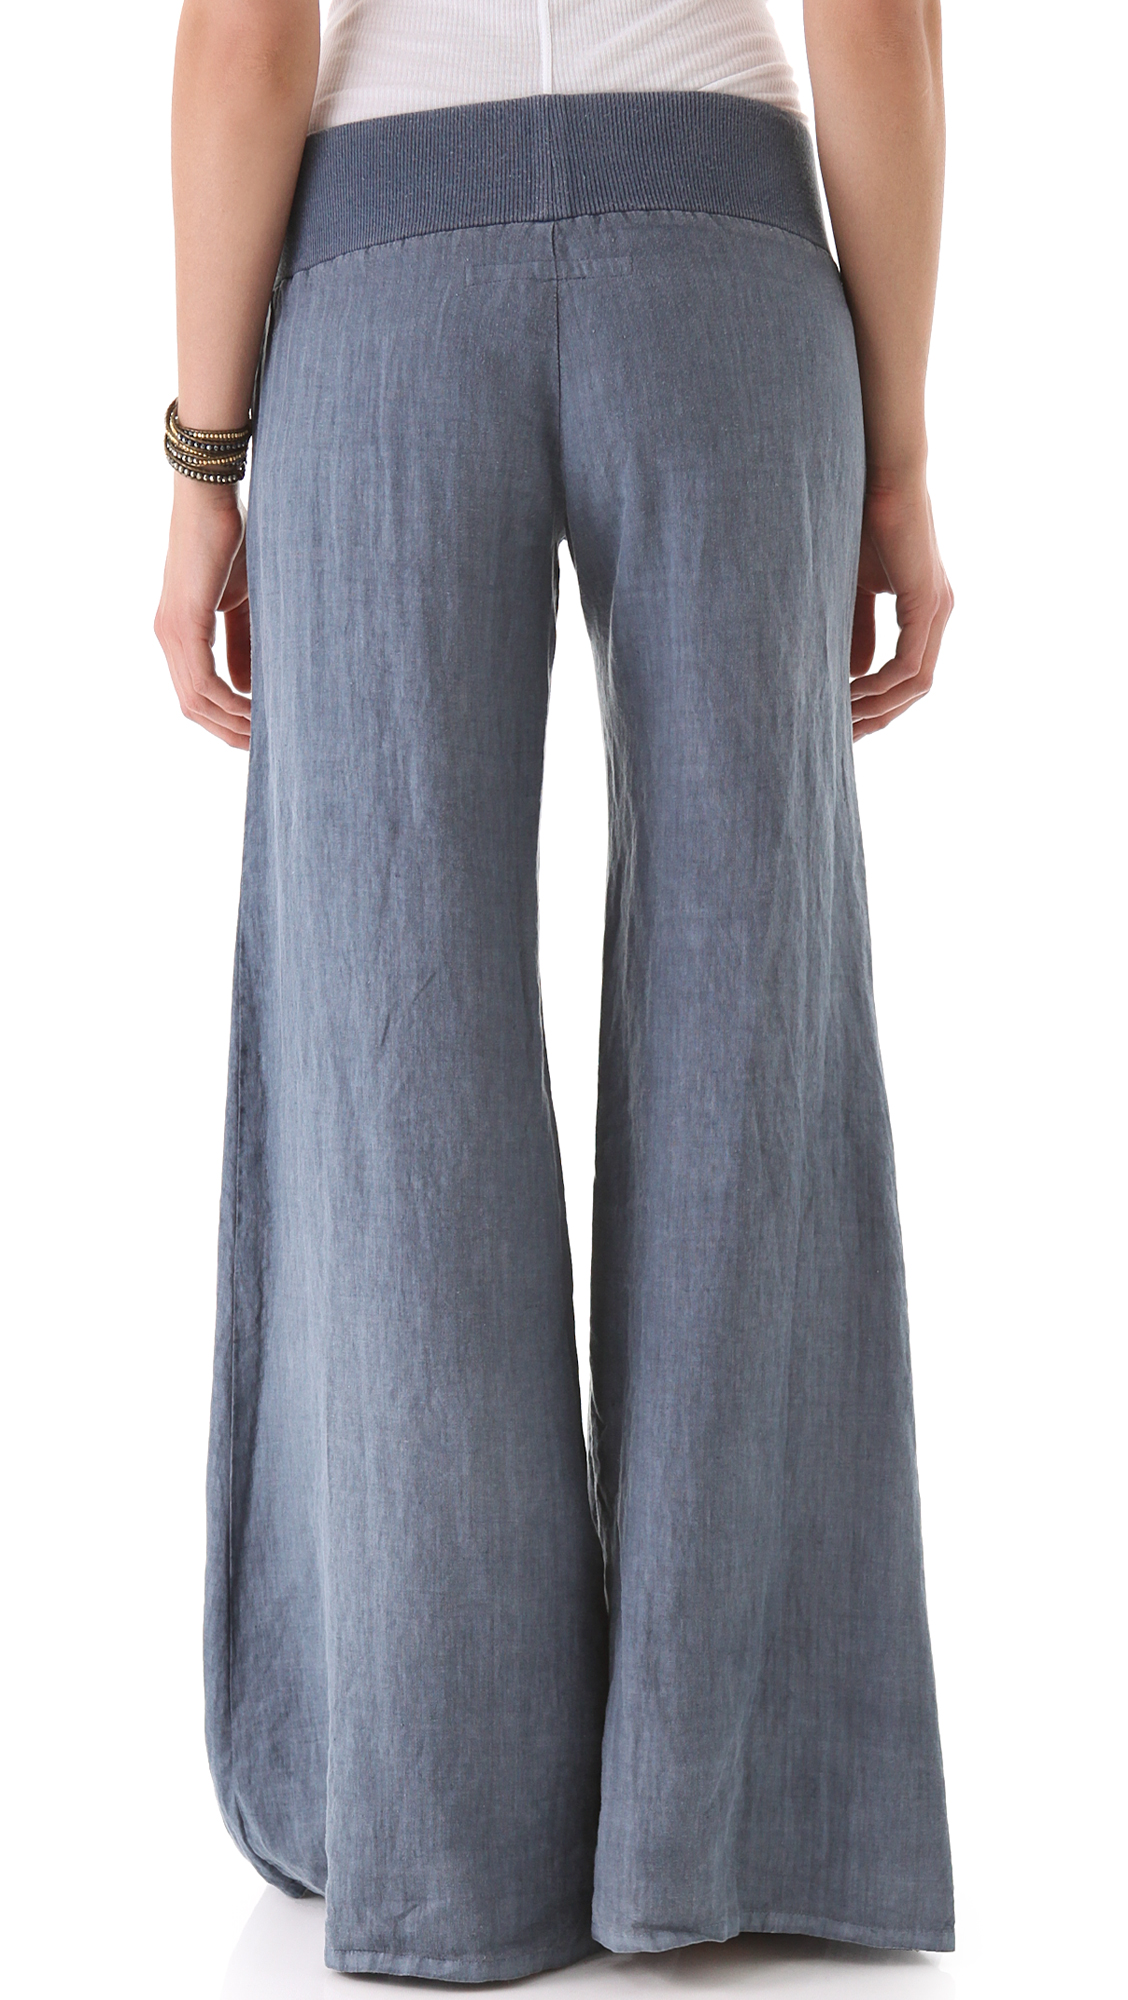 Enza costa Linen Wide Leg Pants White in Blue | Lyst